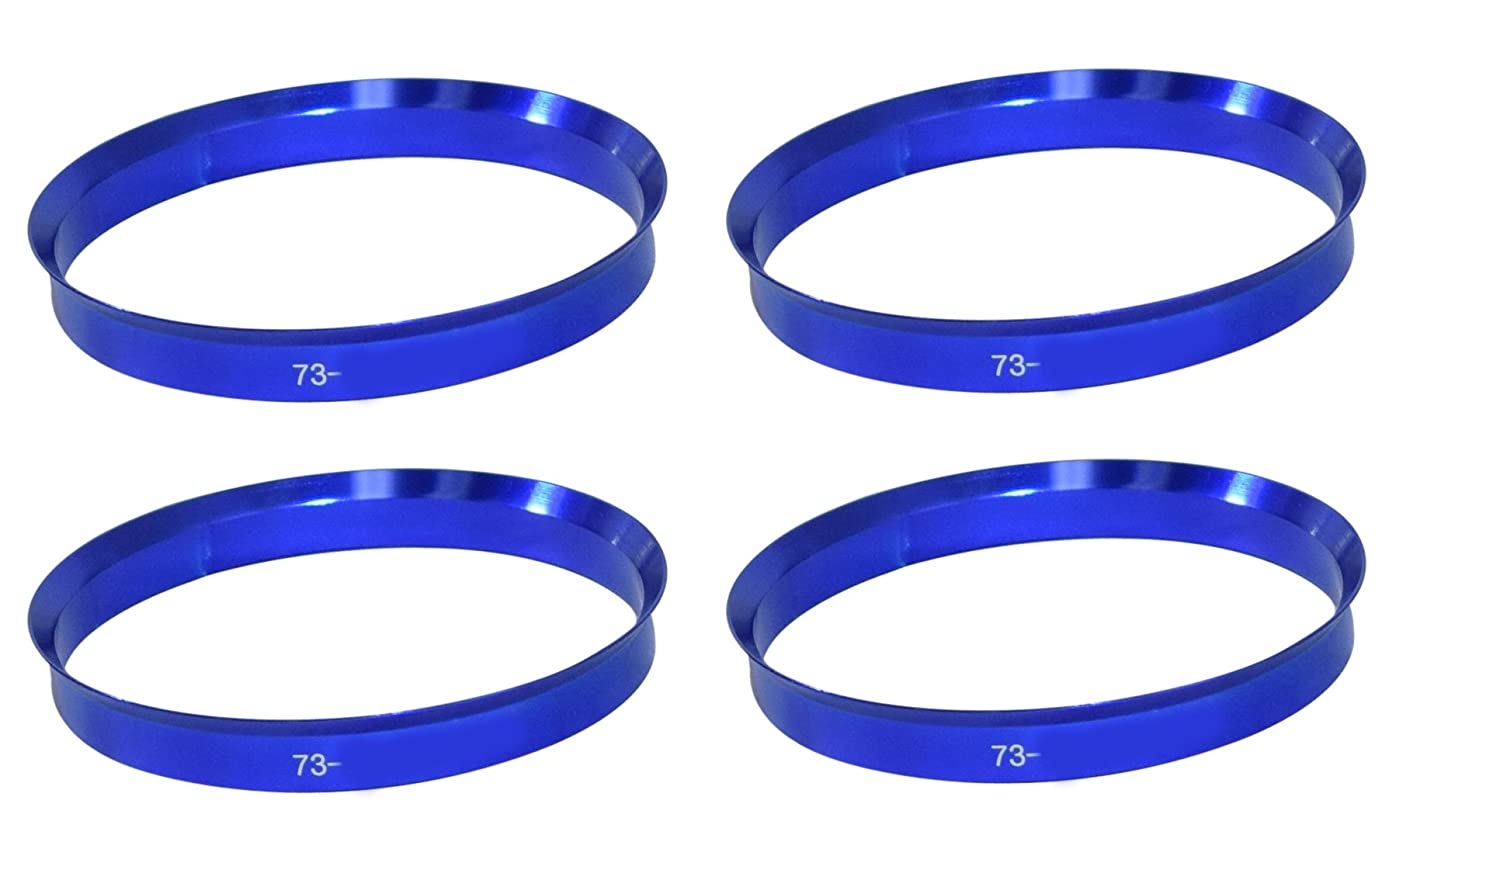 73mm OD to 70.50mm ID Aluminum Coyote Wheel Accessories 73-7050M Hub Centric Ring Set of 4